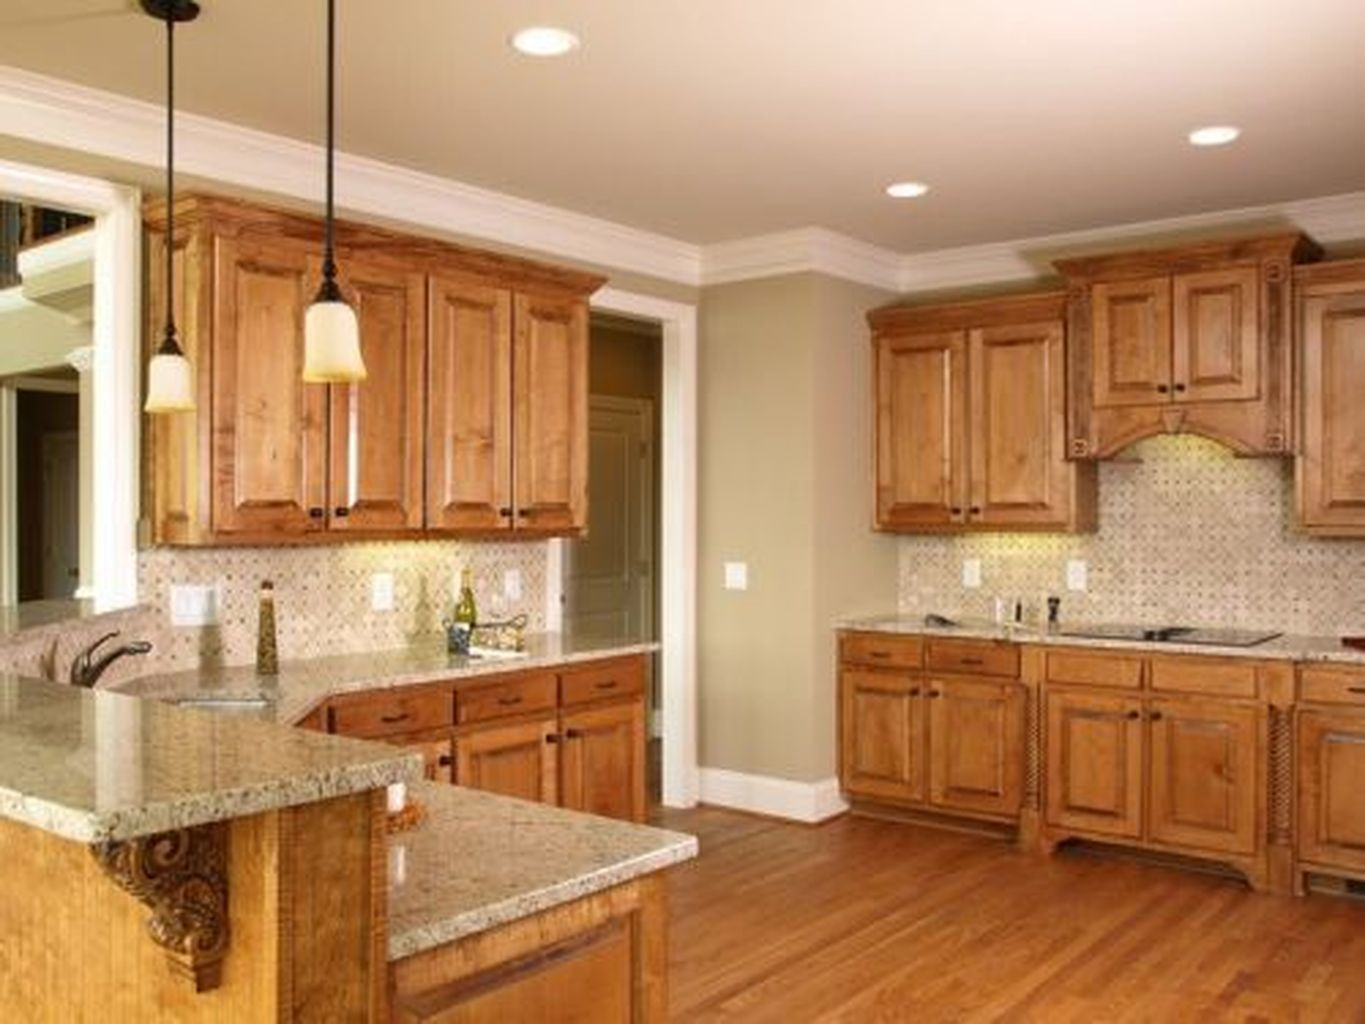 Inspiring kitchen paint colors ideas with oak cabinet for paul